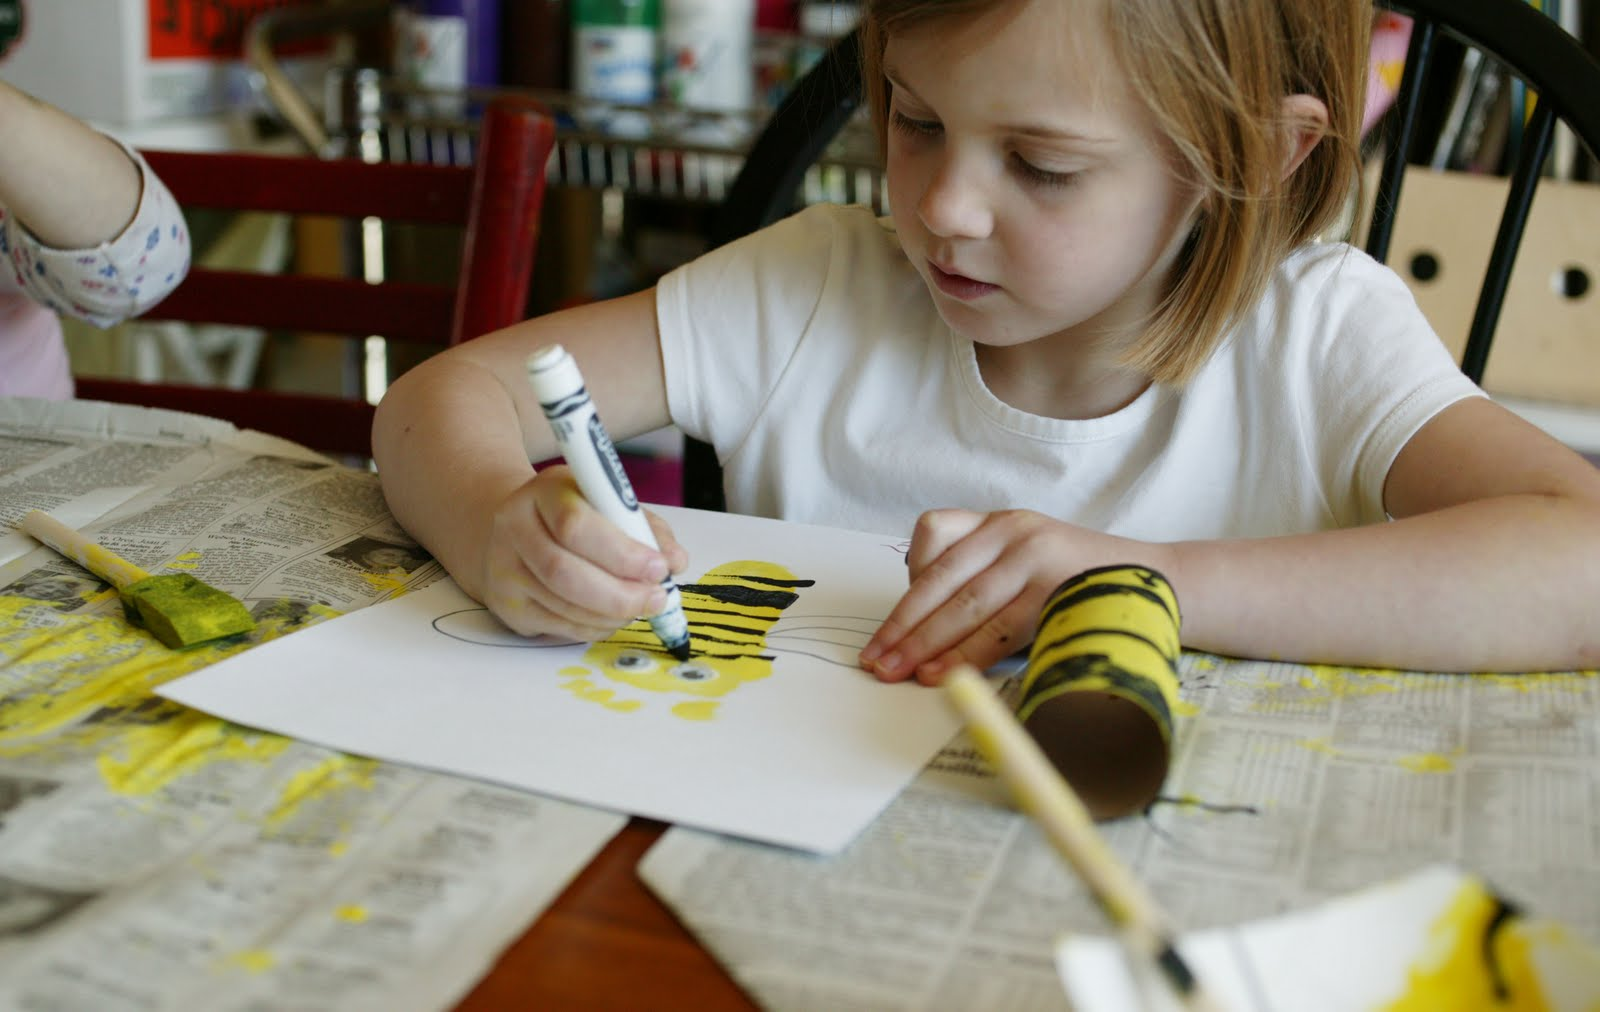 Child Coloring With Markers